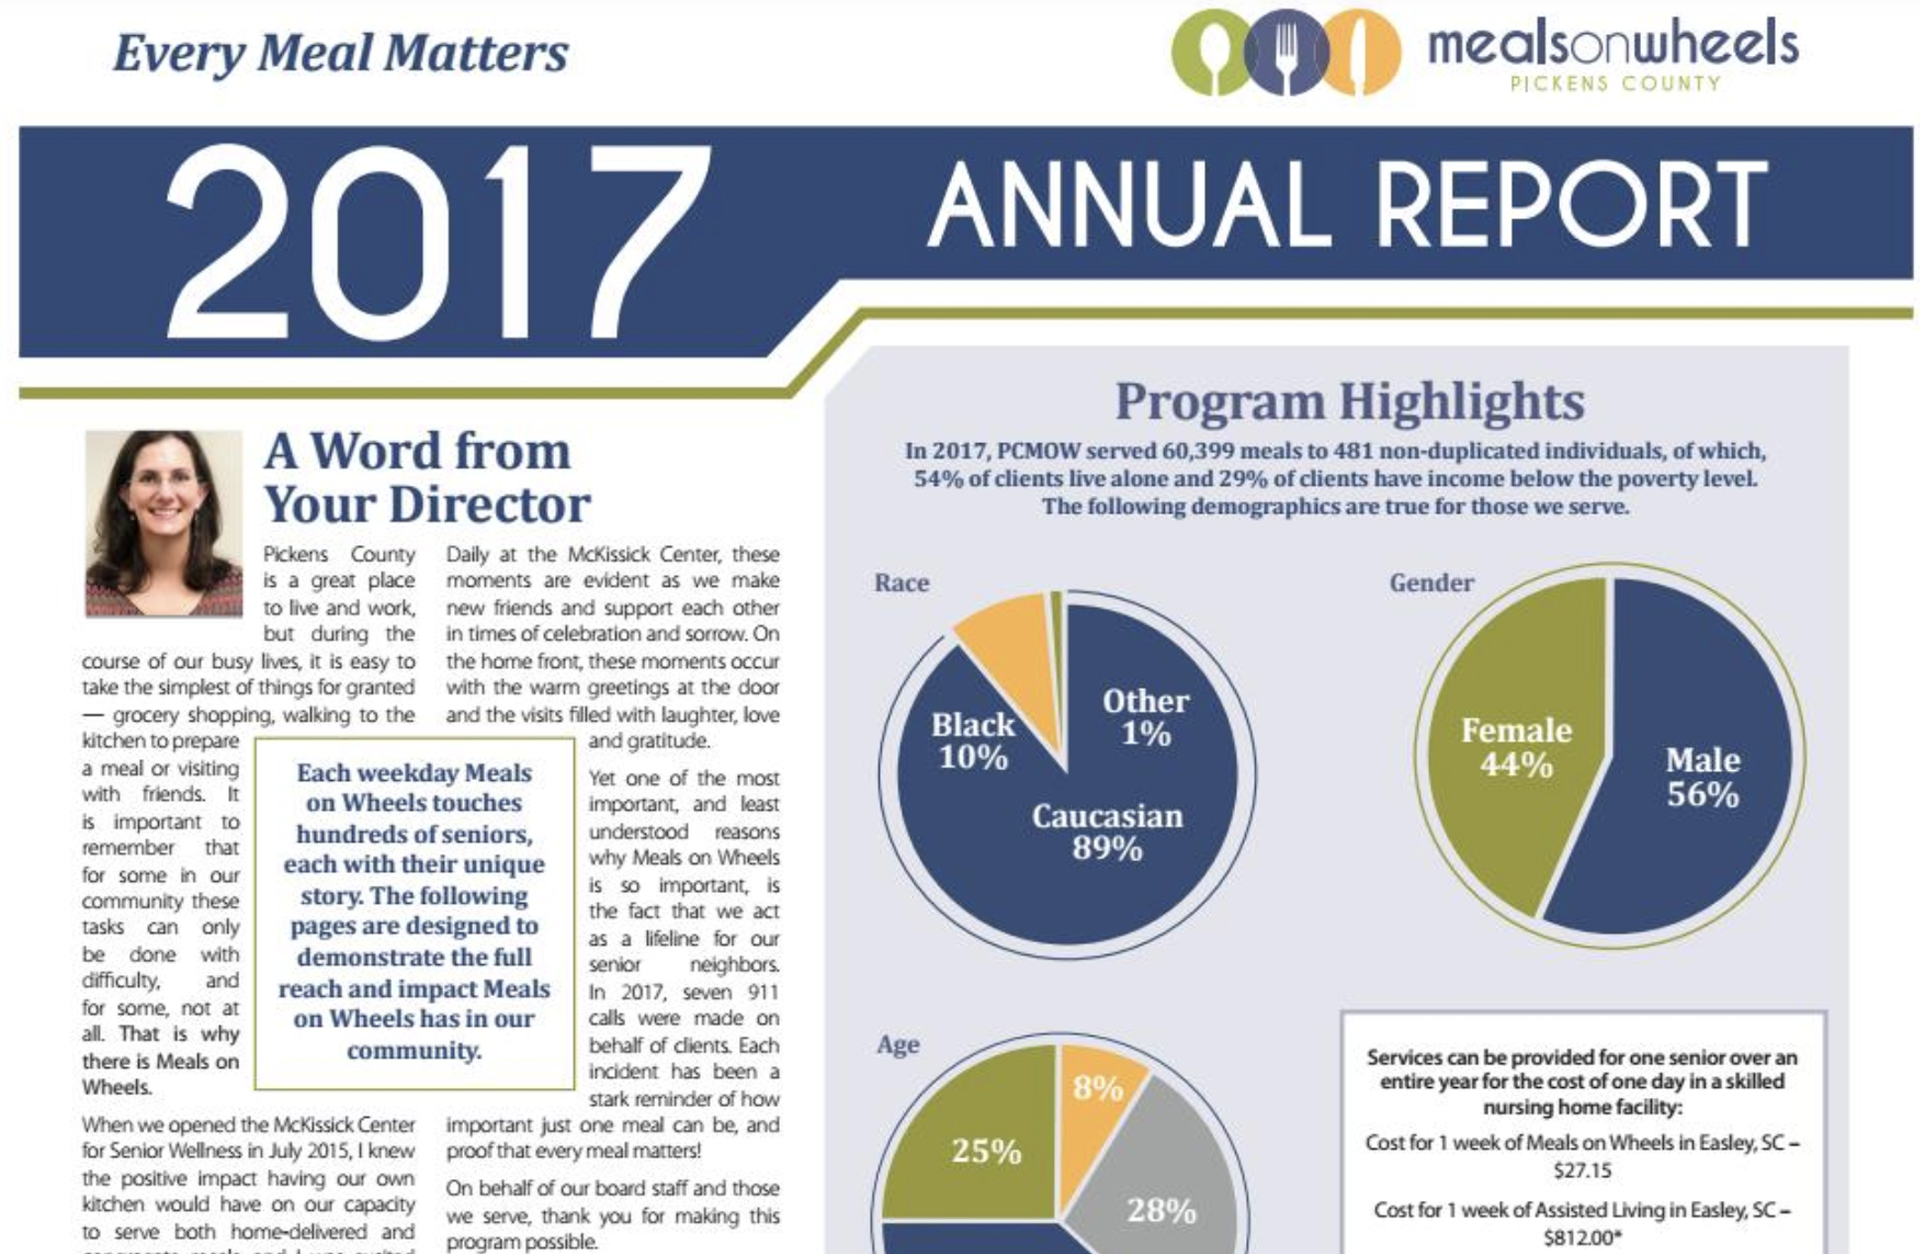 PCMOW 2017 Annual Report